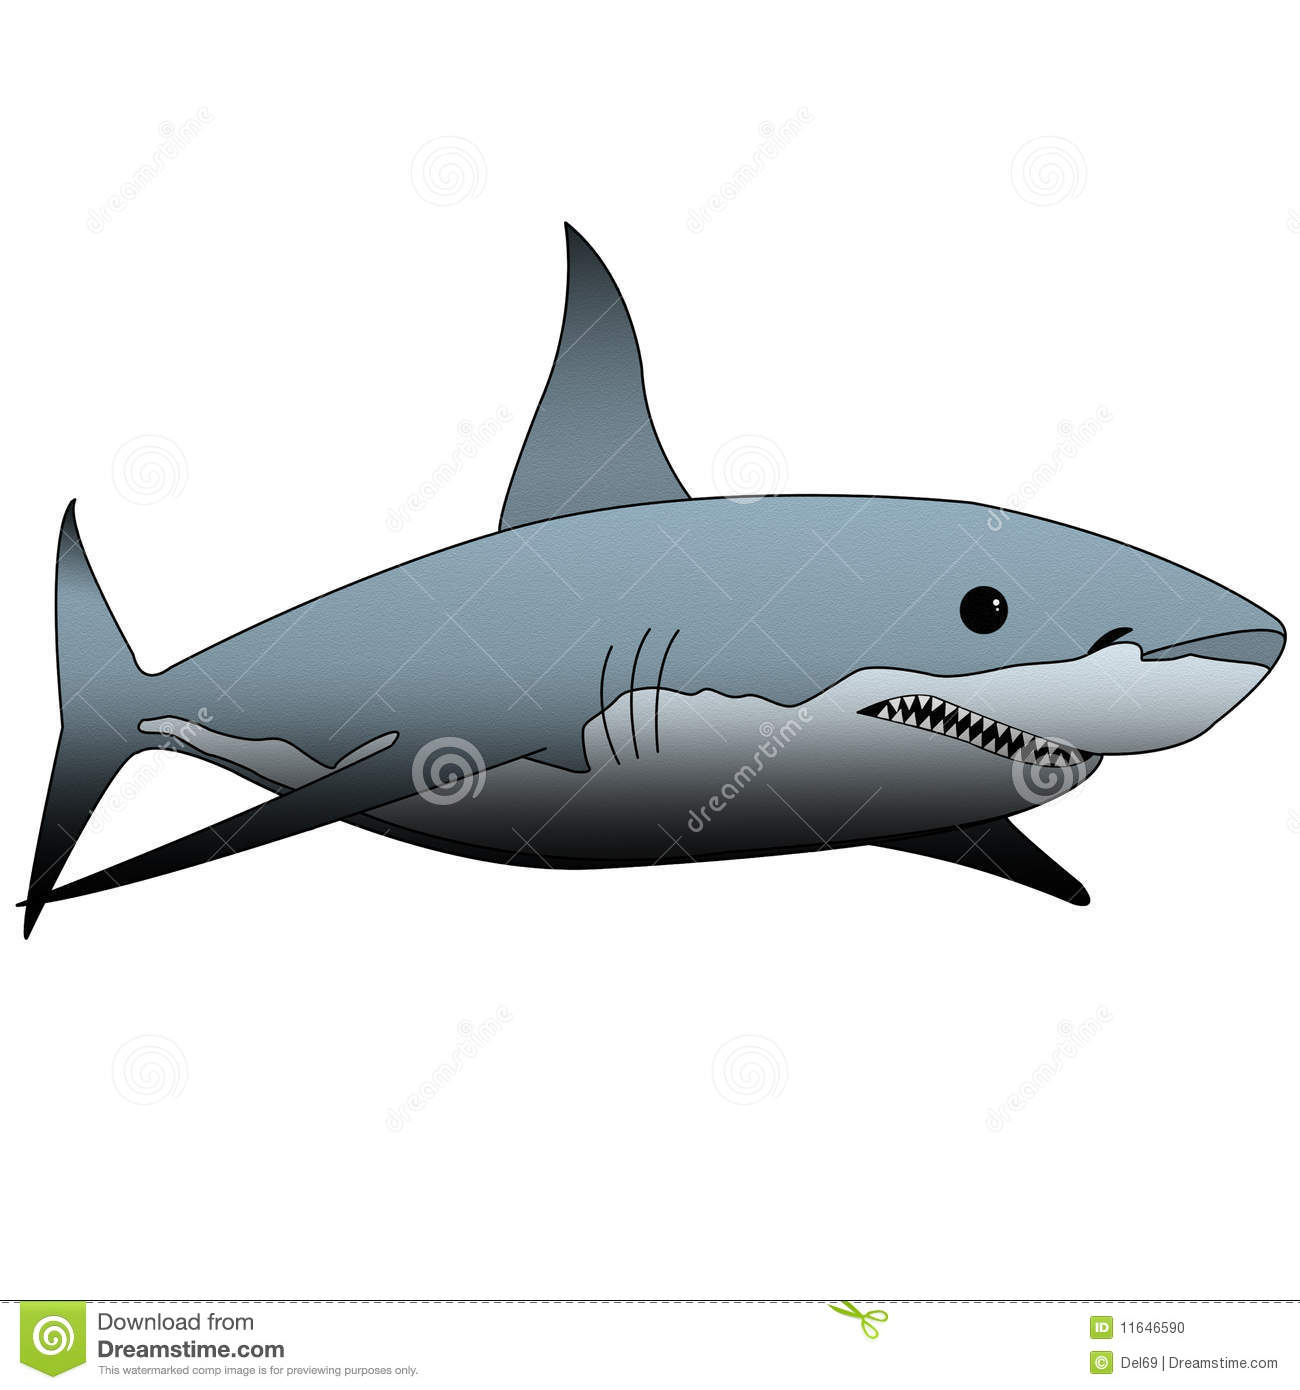 Shark illustration stock illustration. Illustration of grey - 11646590 for Great White Shark Diagram  173lyp